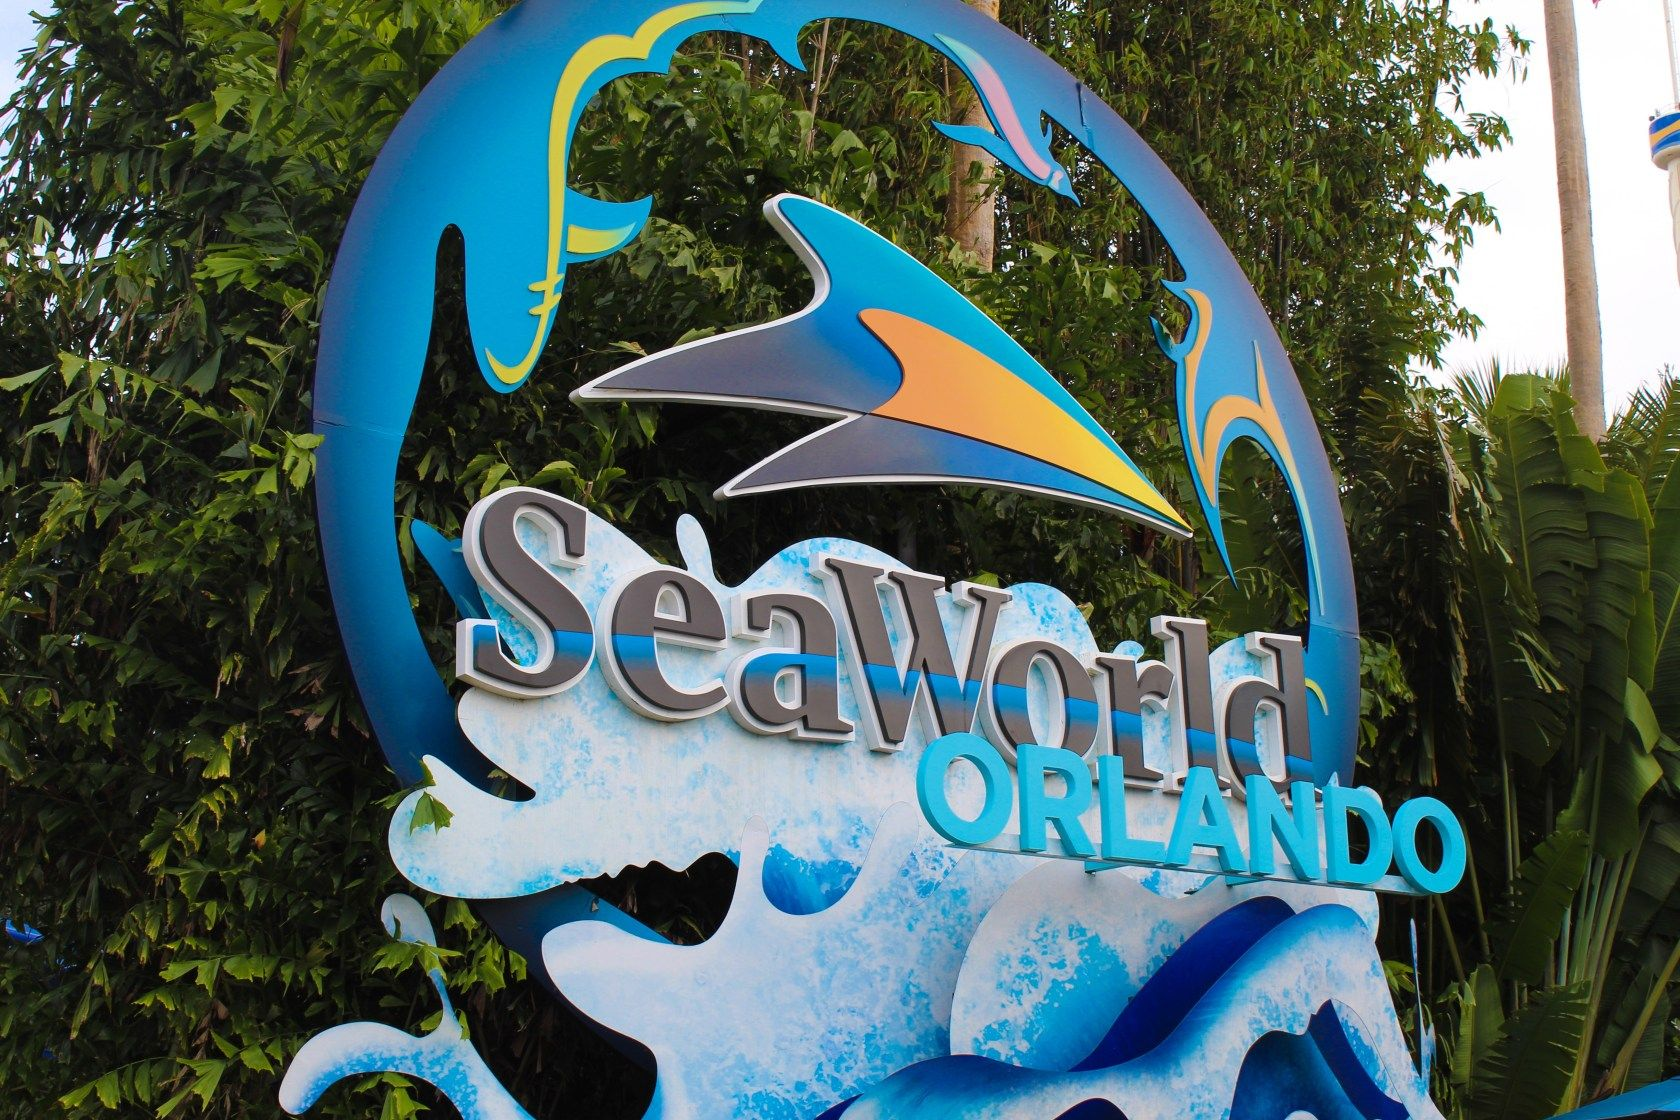 Seaworld Military Discount Why The Waves Of Honor Program Should